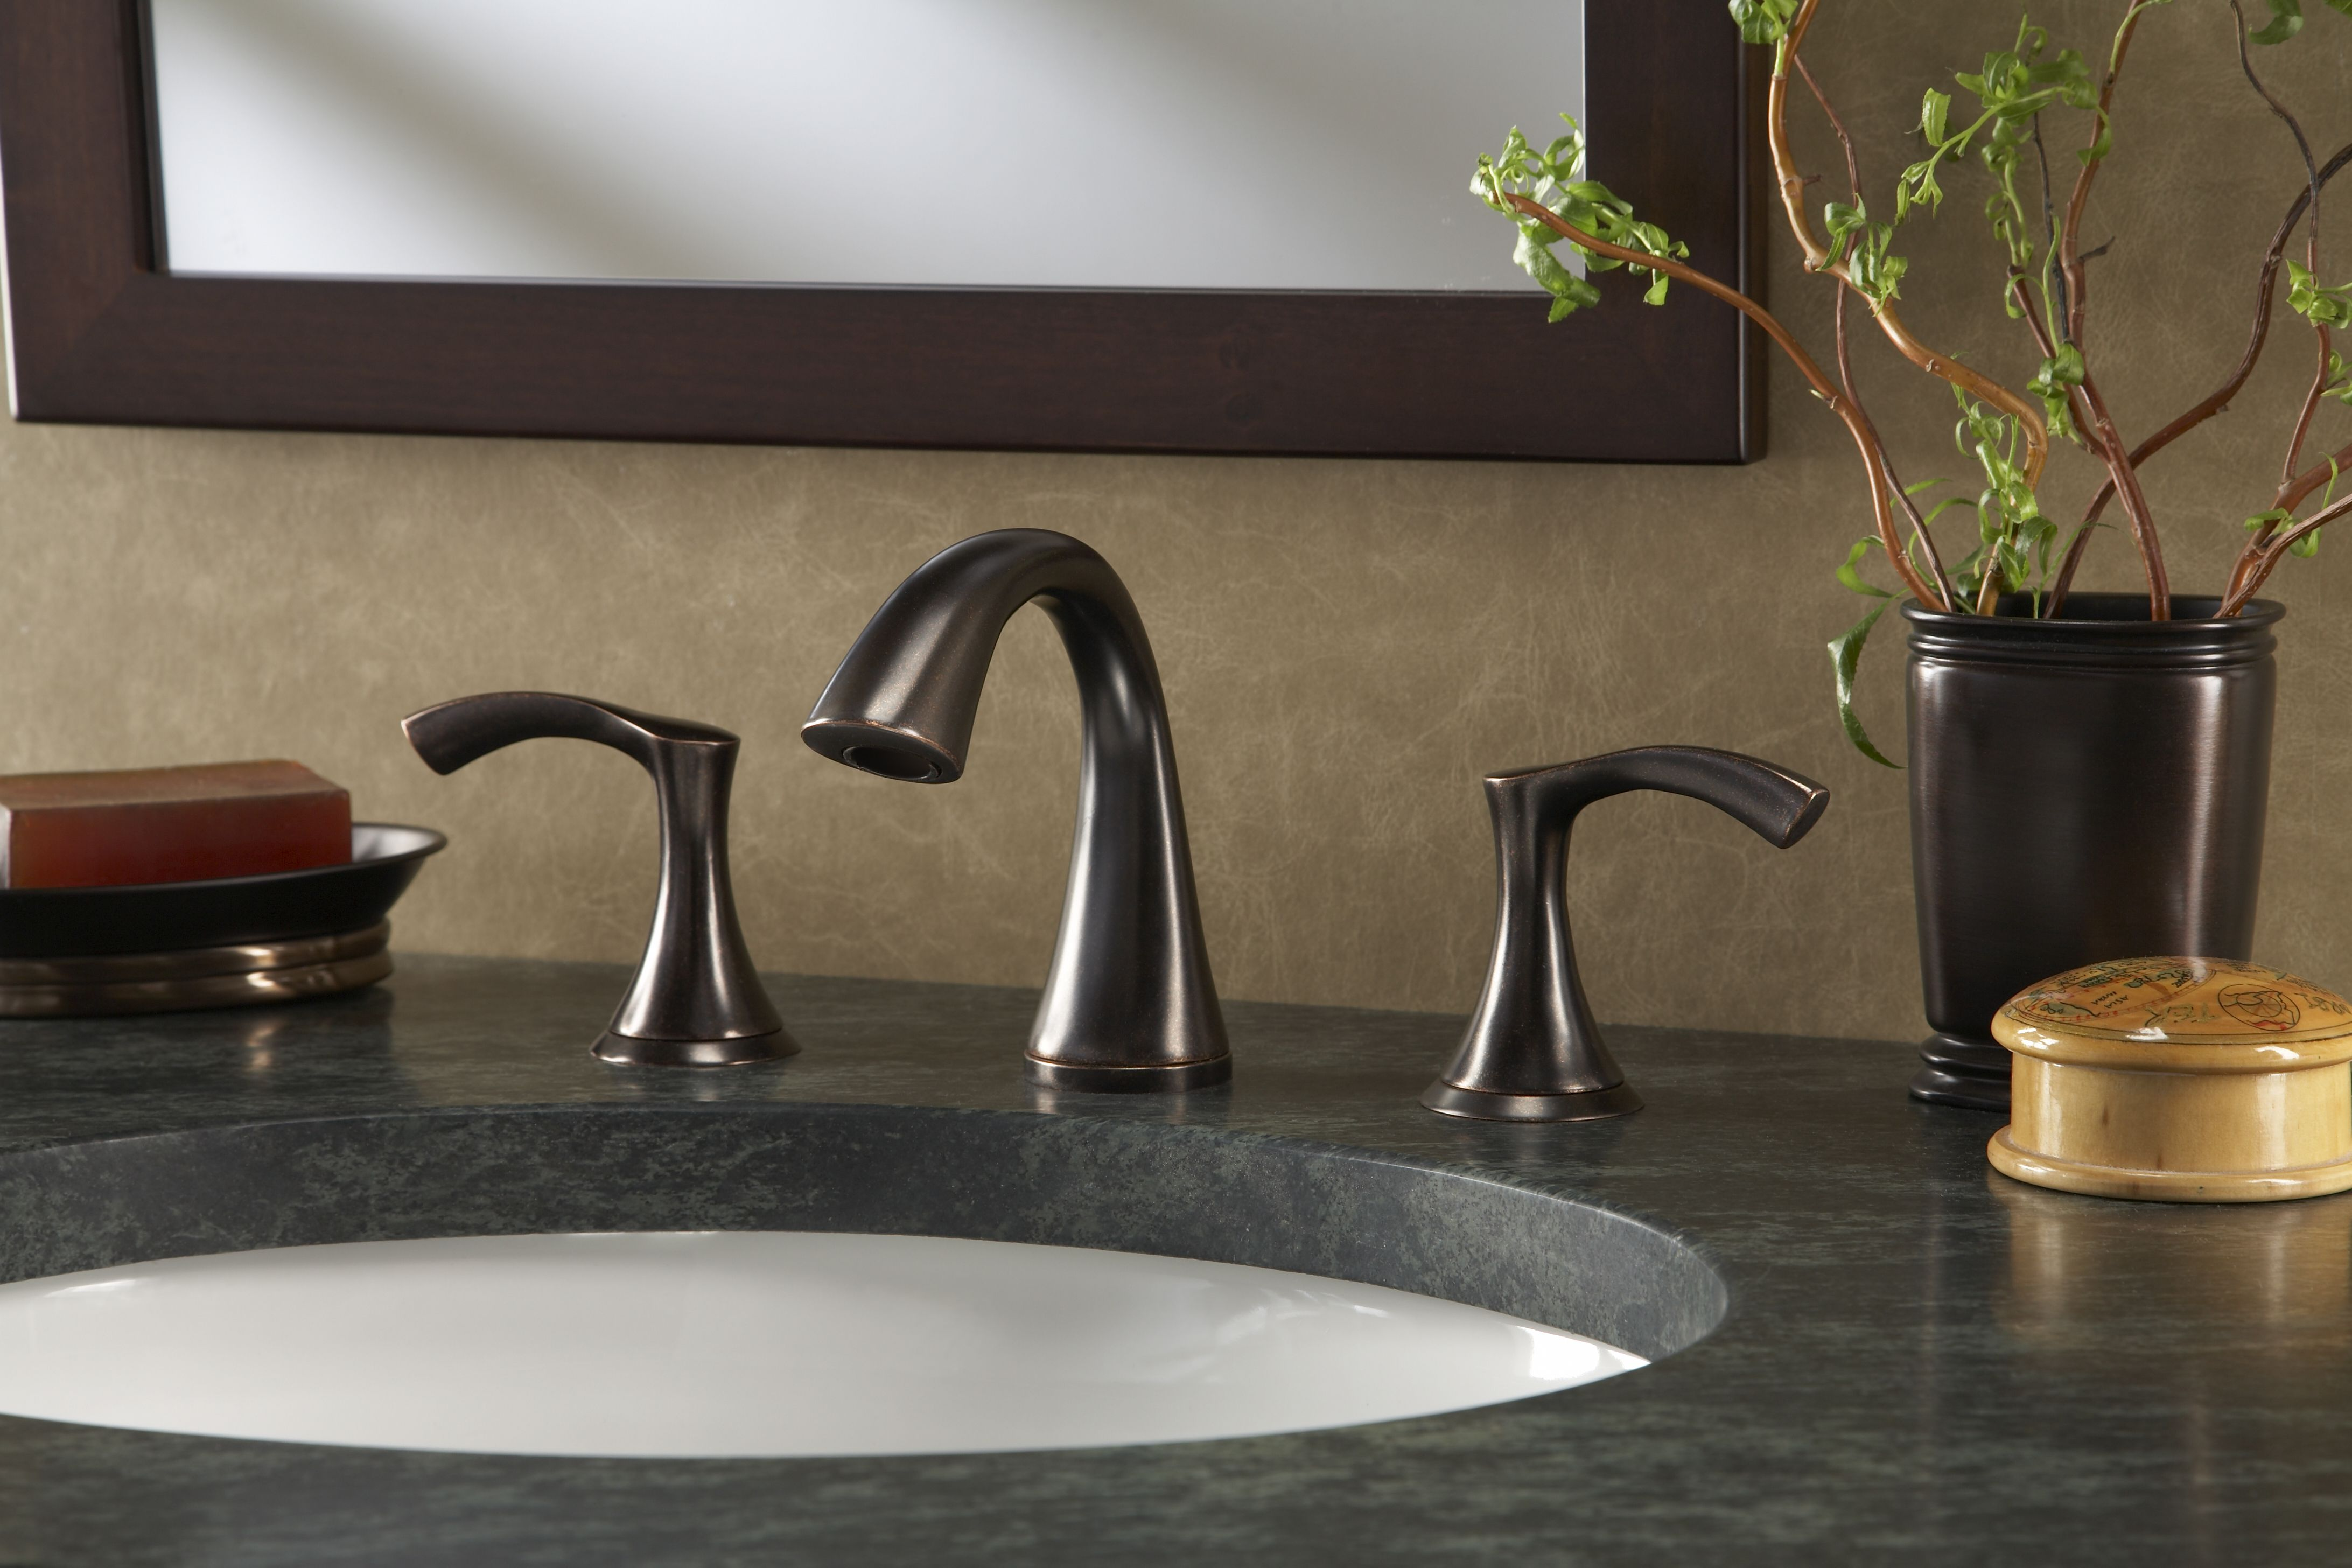 Danze Antioch Two Handle Bathroom Faucet Ideas For The House